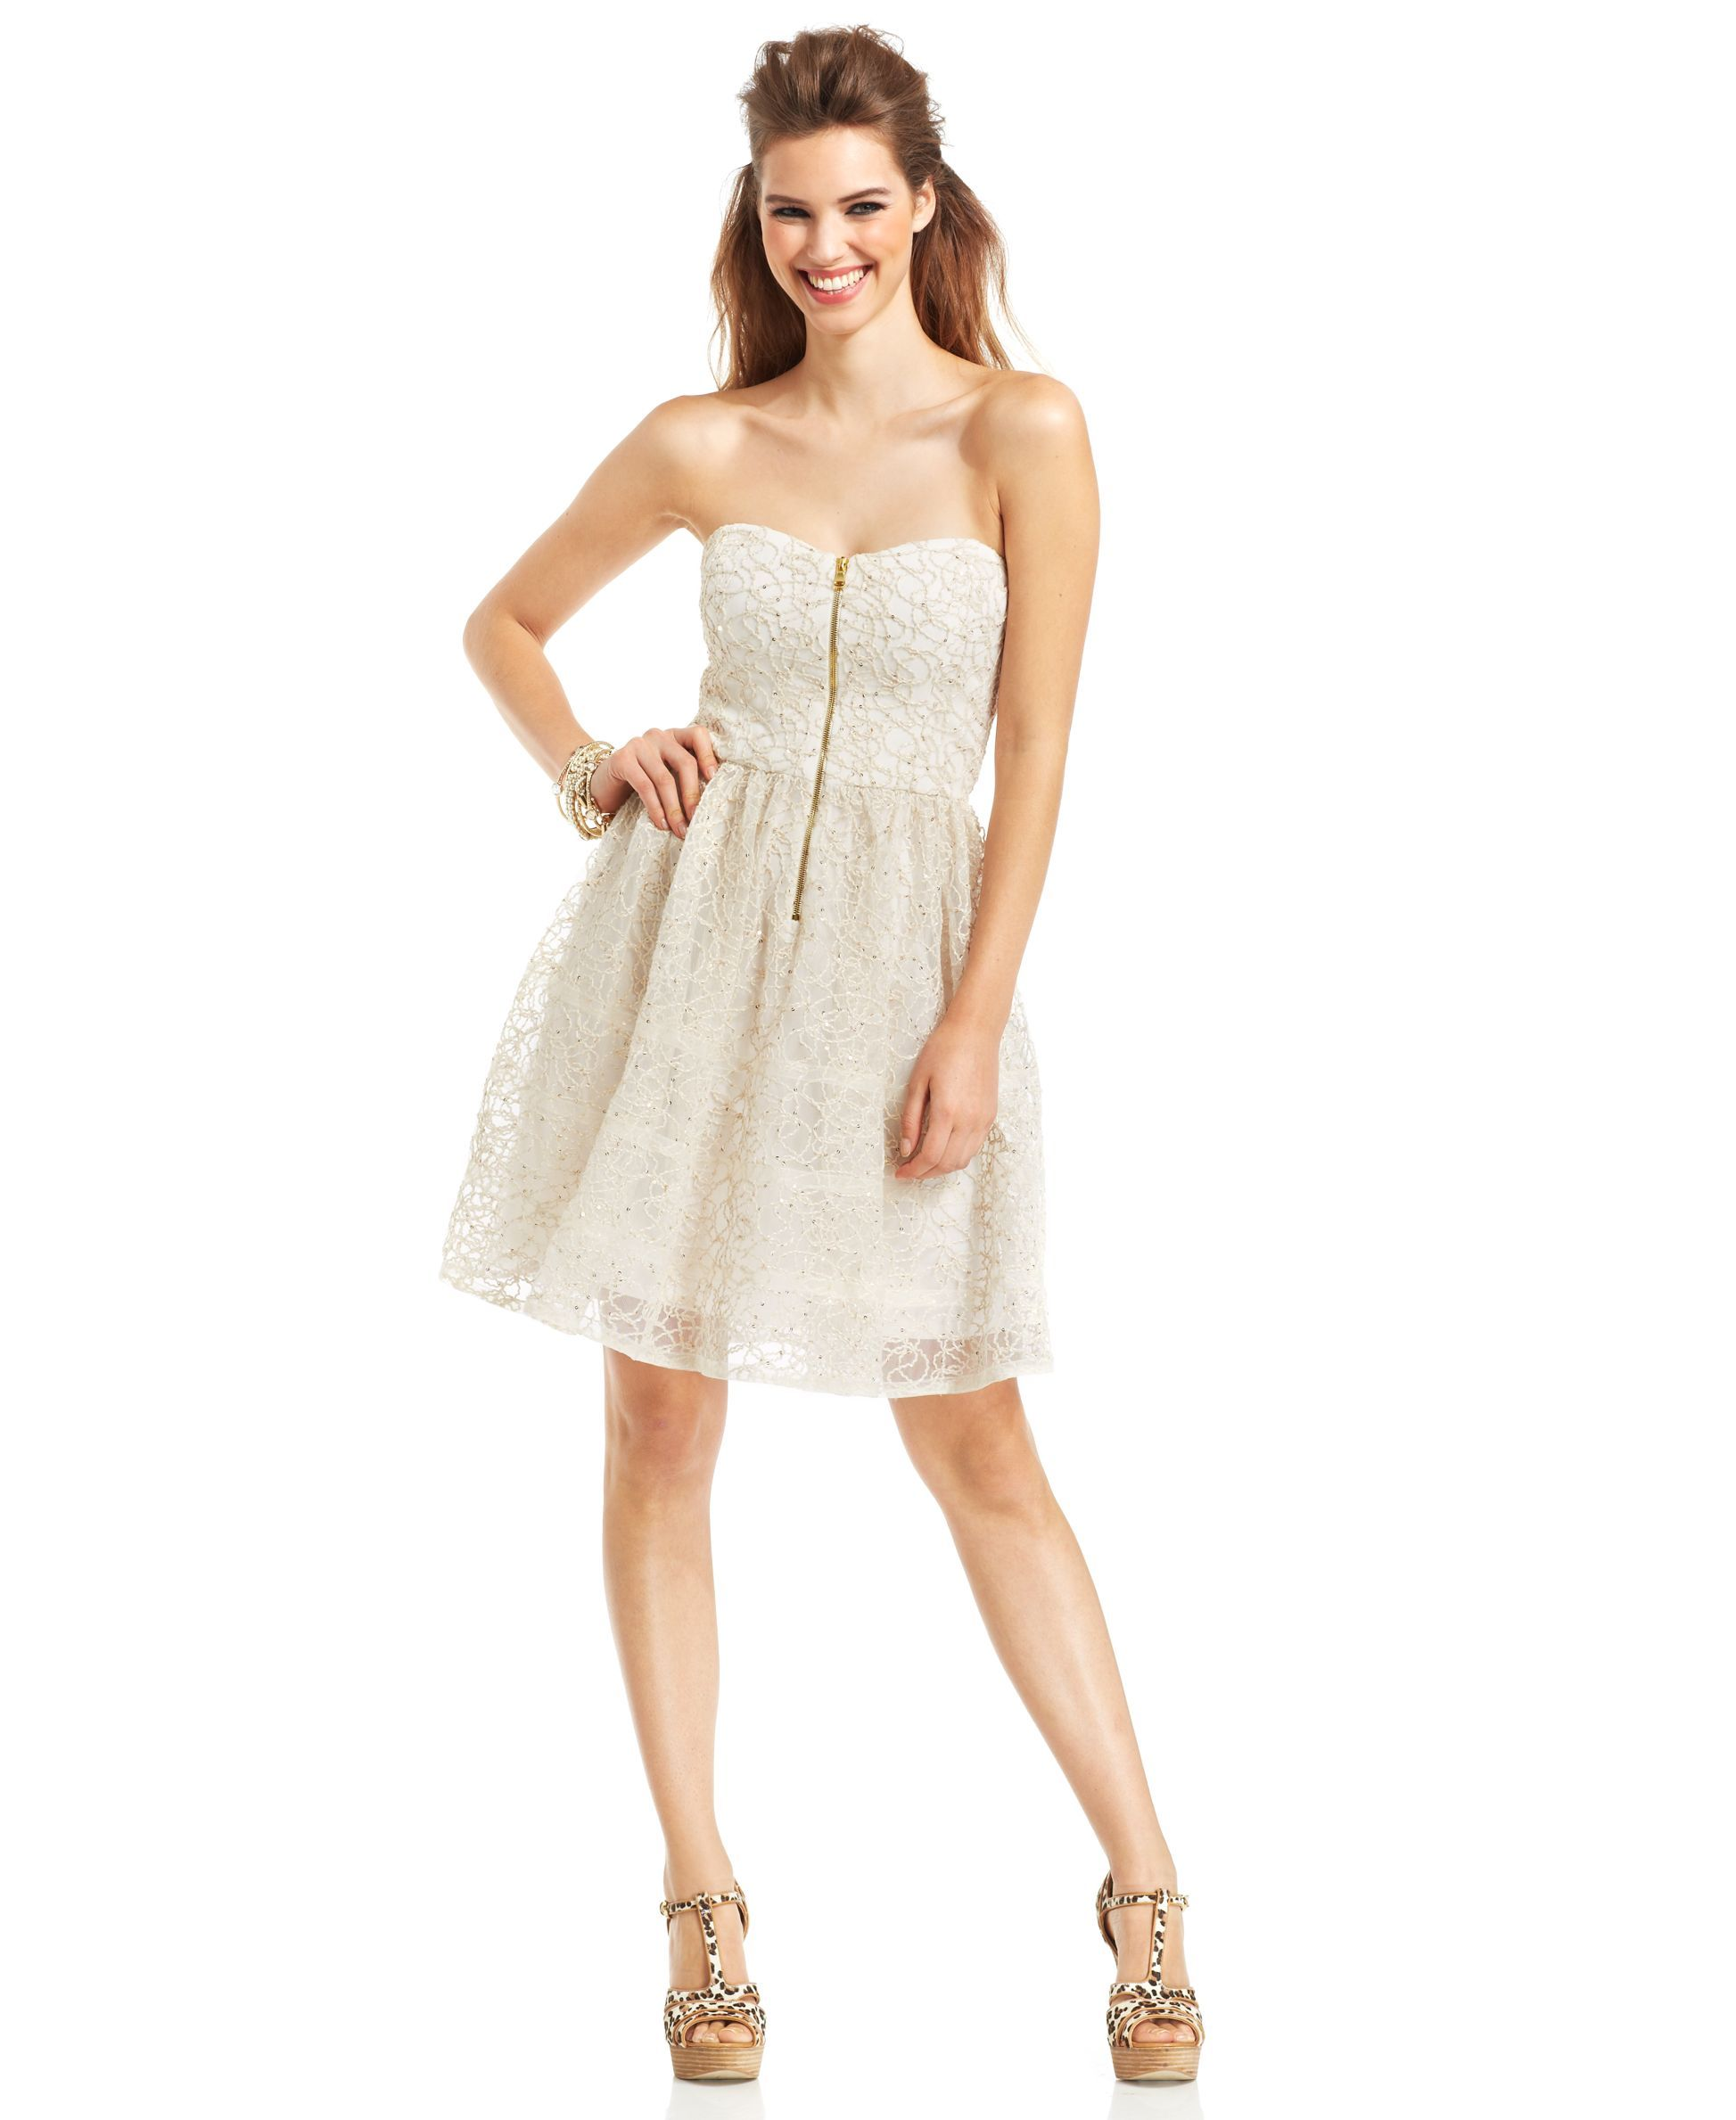 Betsey Johnson Strapless Embroidered Lace Sequined Dress